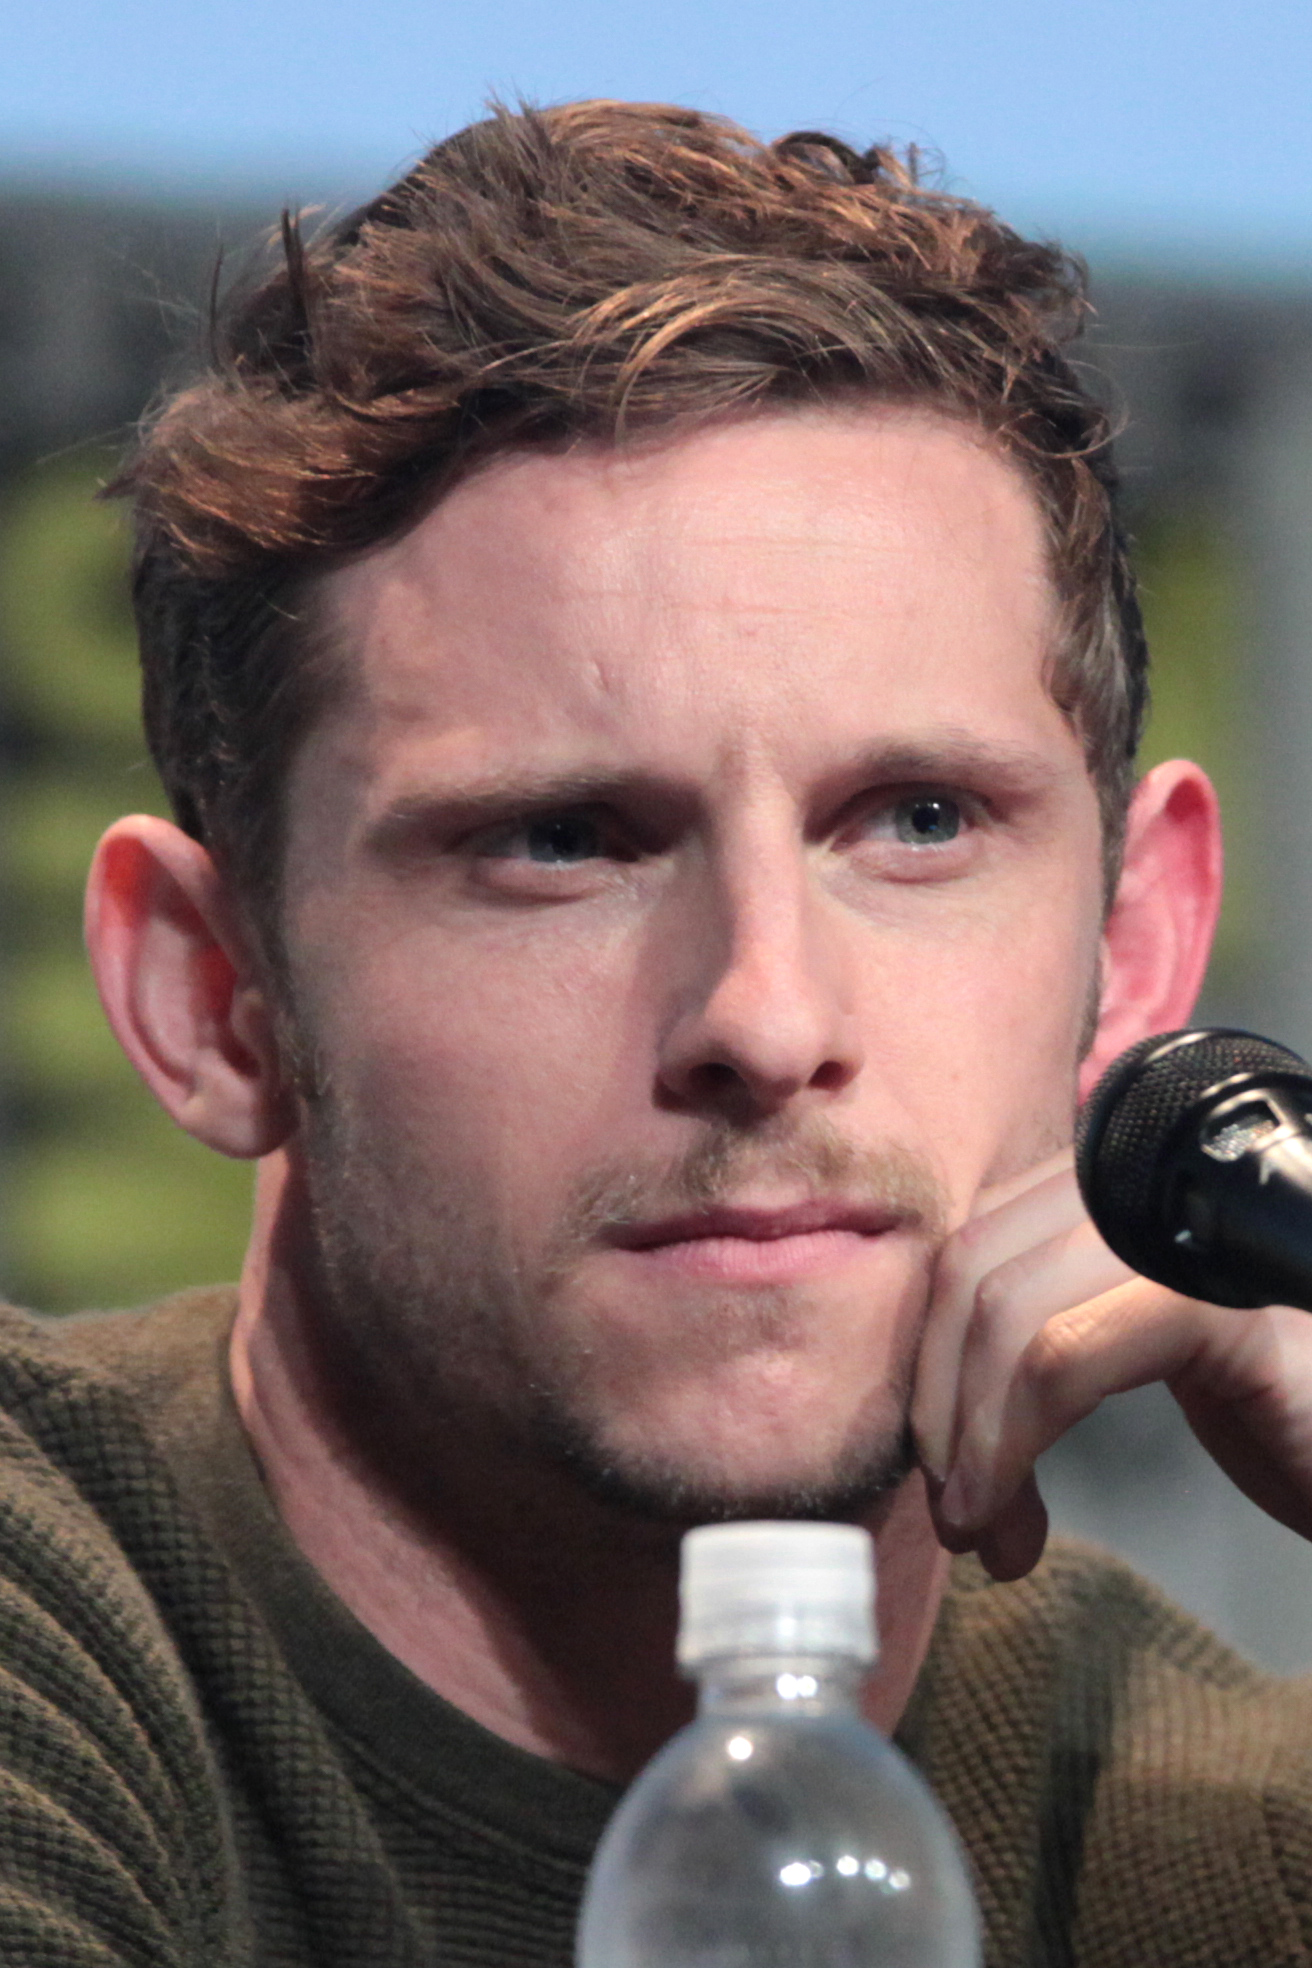 The 32-year old son of father John Bell and mother Eileen Matfin Jamie Bell in 2018 photo. Jamie Bell earned a  million dollar salary - leaving the net worth at 11 million in 2018